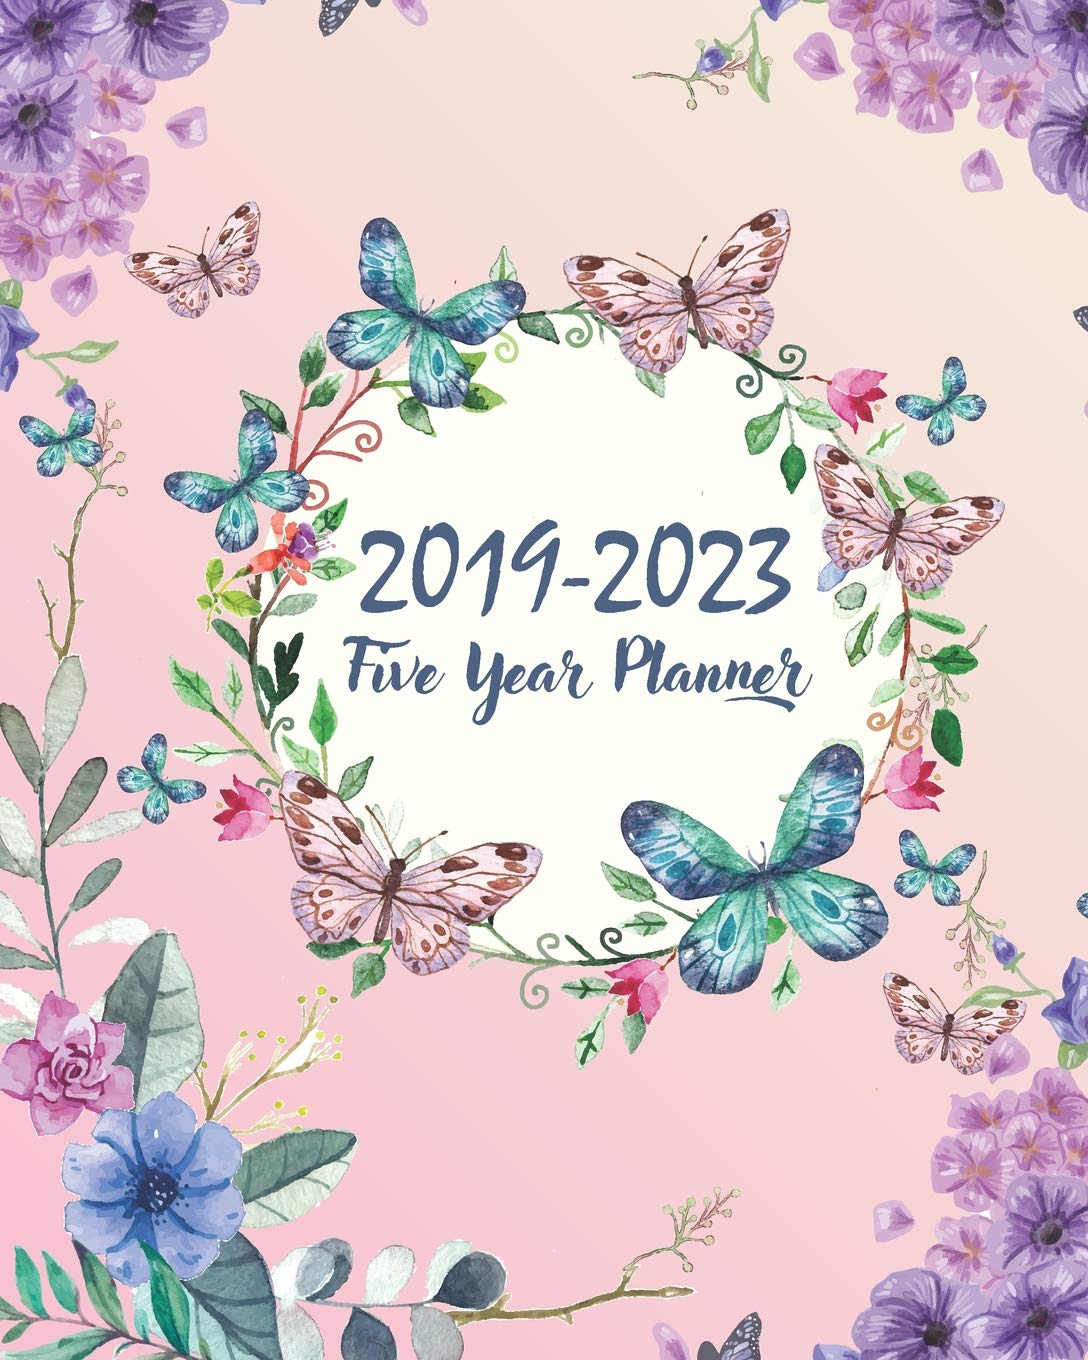 2019-2023 Five Year Planner: Butterfly Cover 60 Months Planner and Calendar Agenda And Organizer 8 x 10 with holidays